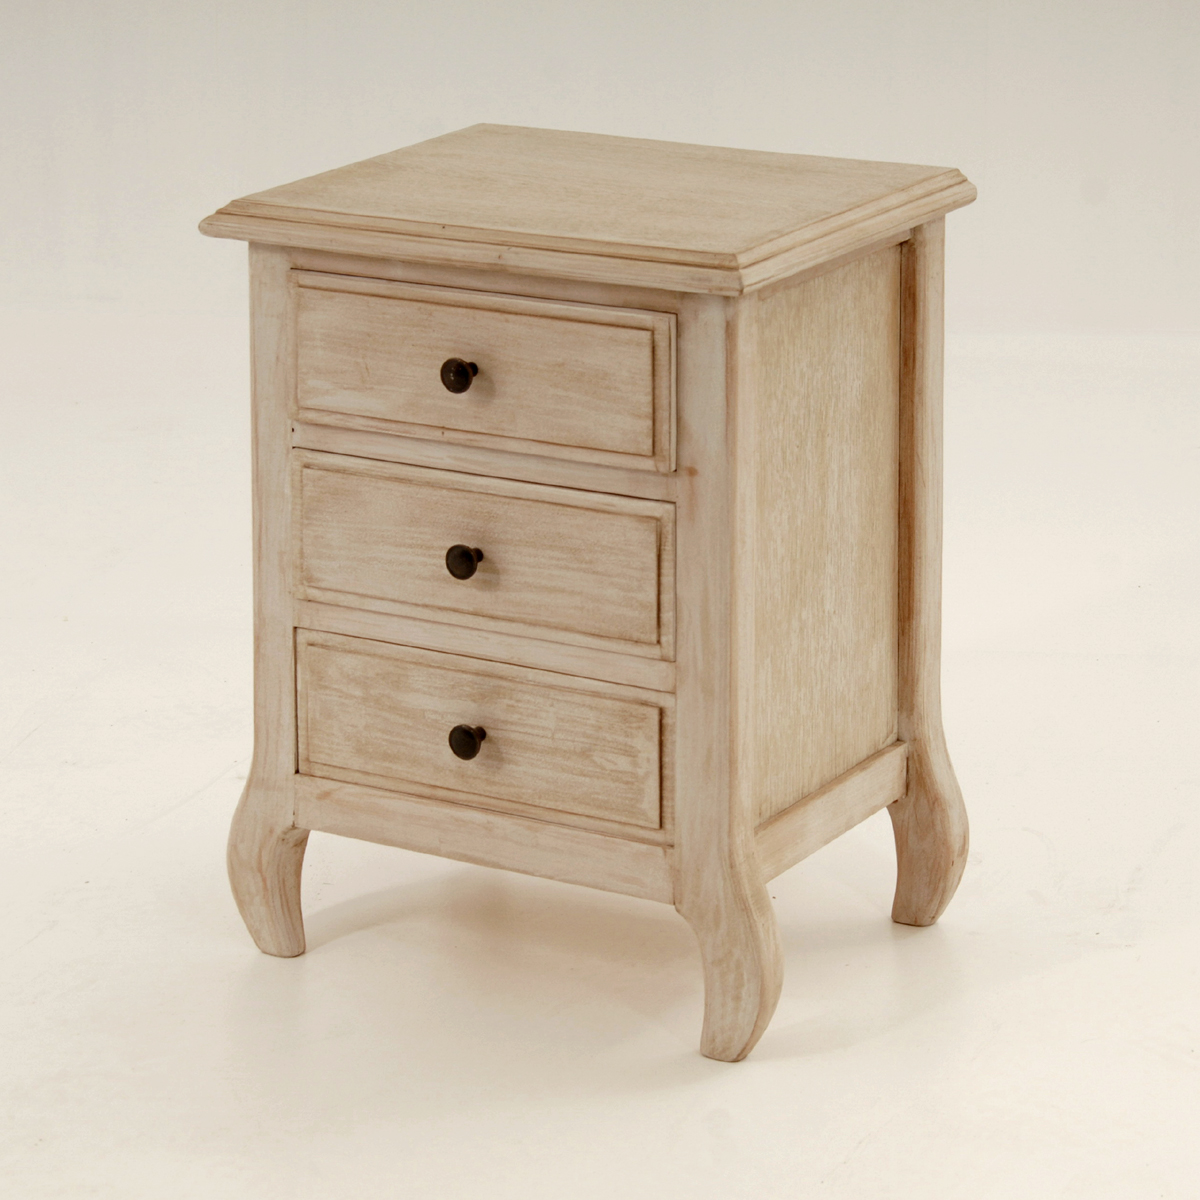 Be0033 Bedside Table With 3 Drawers